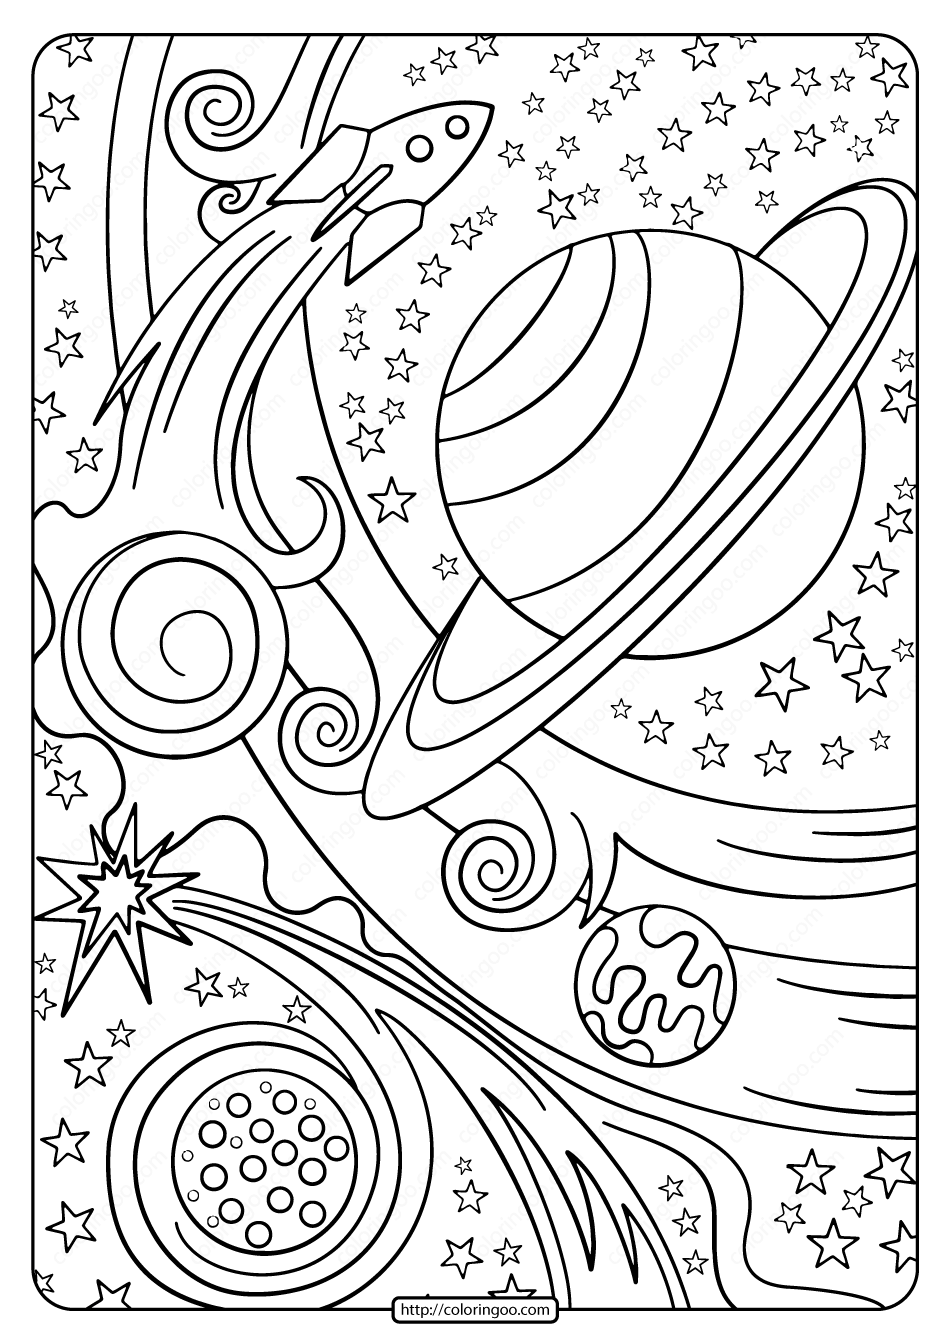 Free Printable Rocket and Planets Pdf Coloring Page